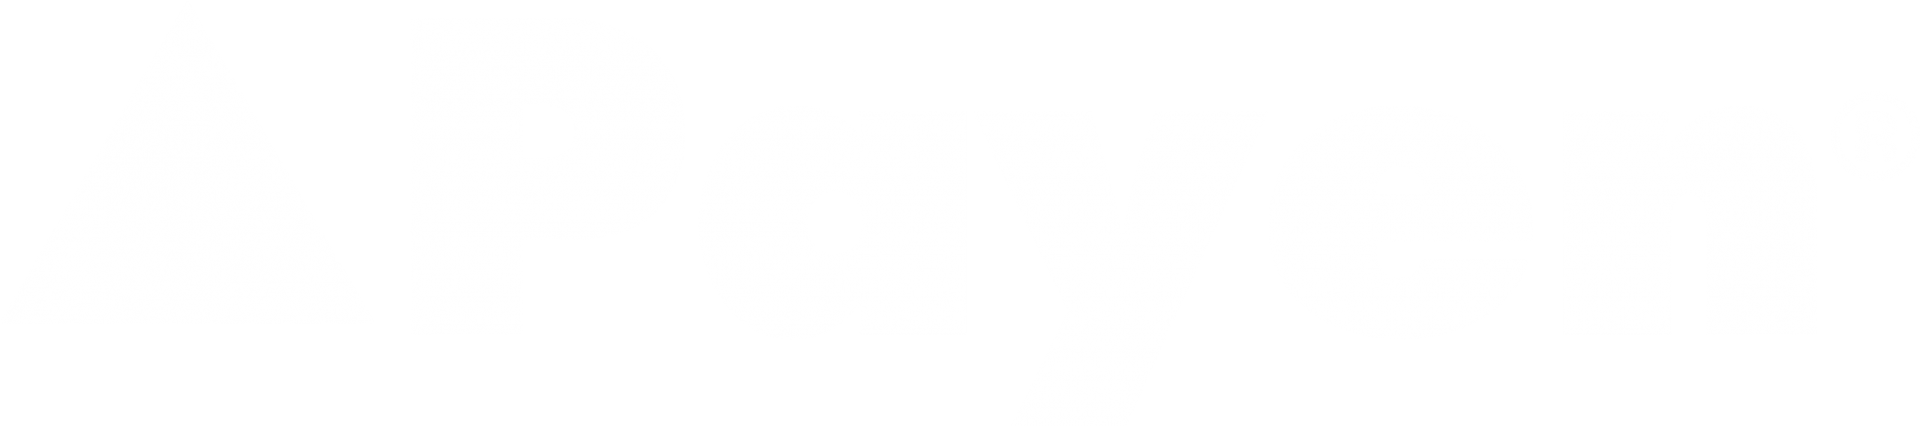 payen-logo-transparent